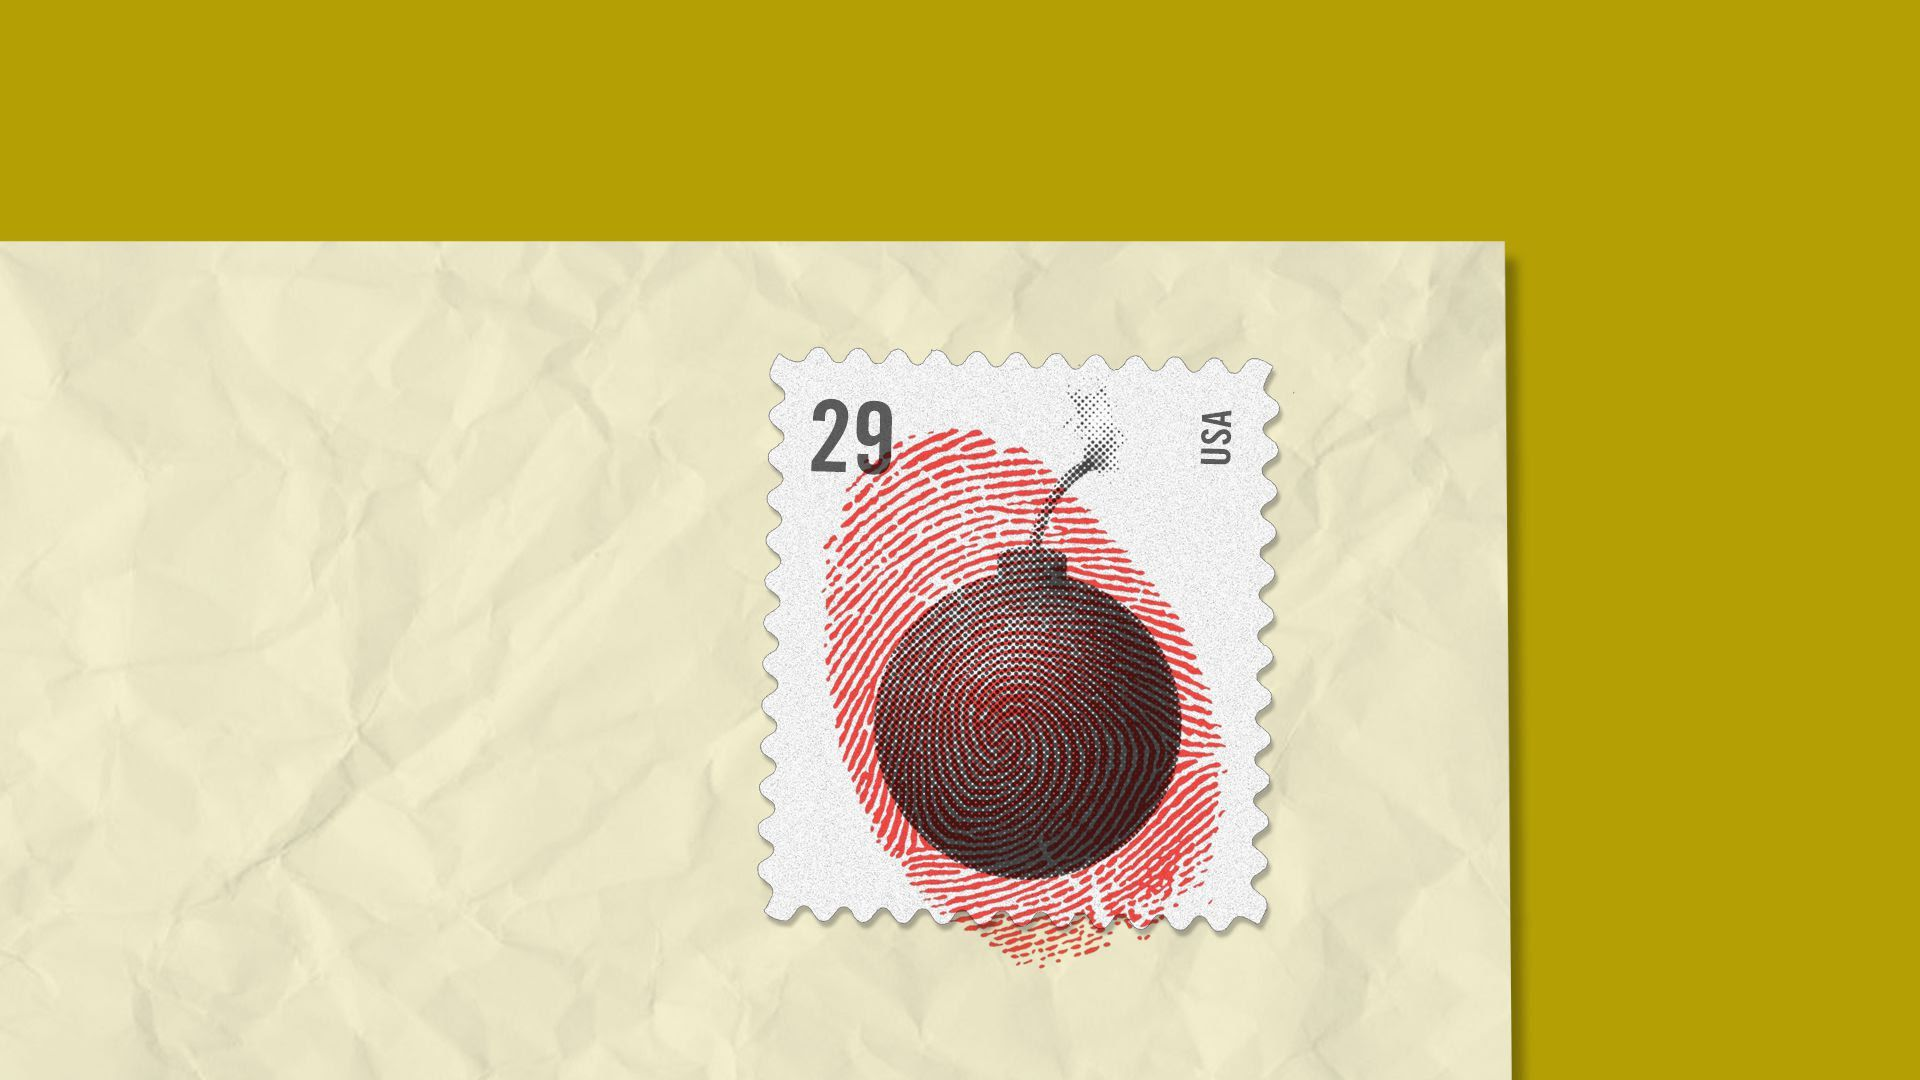 An illustration of a bomb on a stamp with a red fingerprint over it